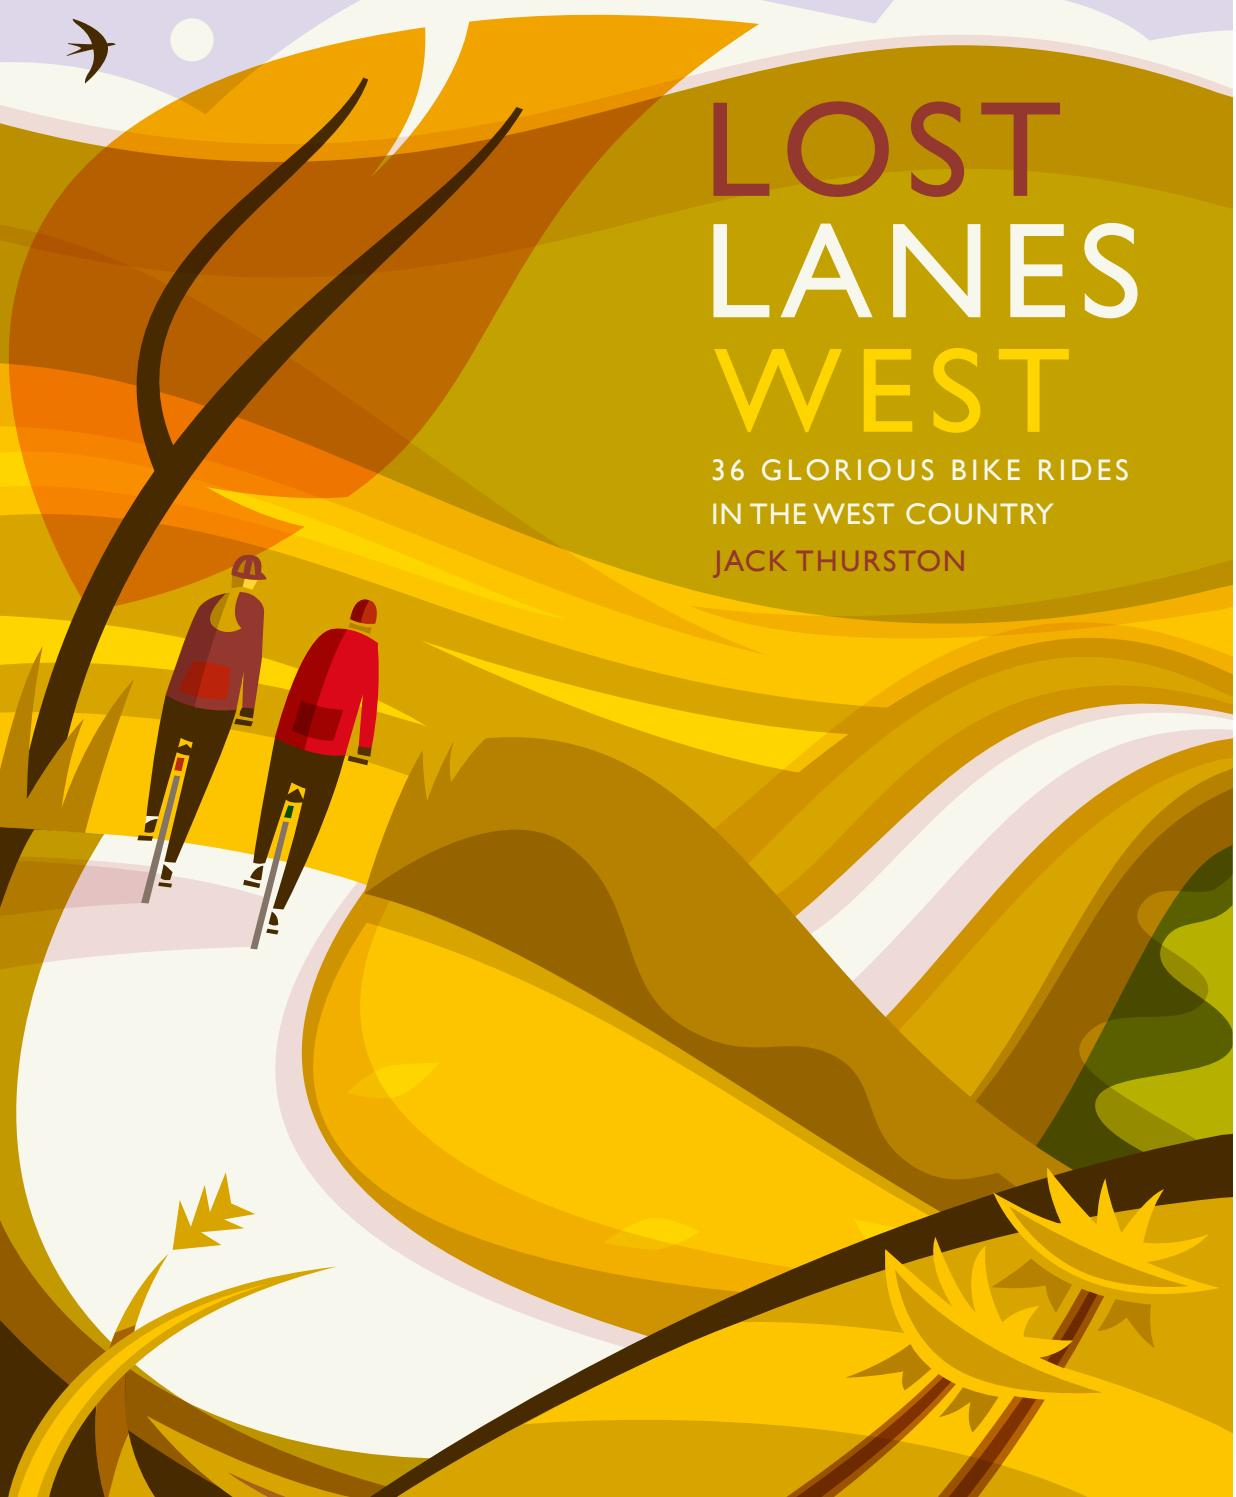 Lost lanes West Country by Jack Thurston sample by Wild